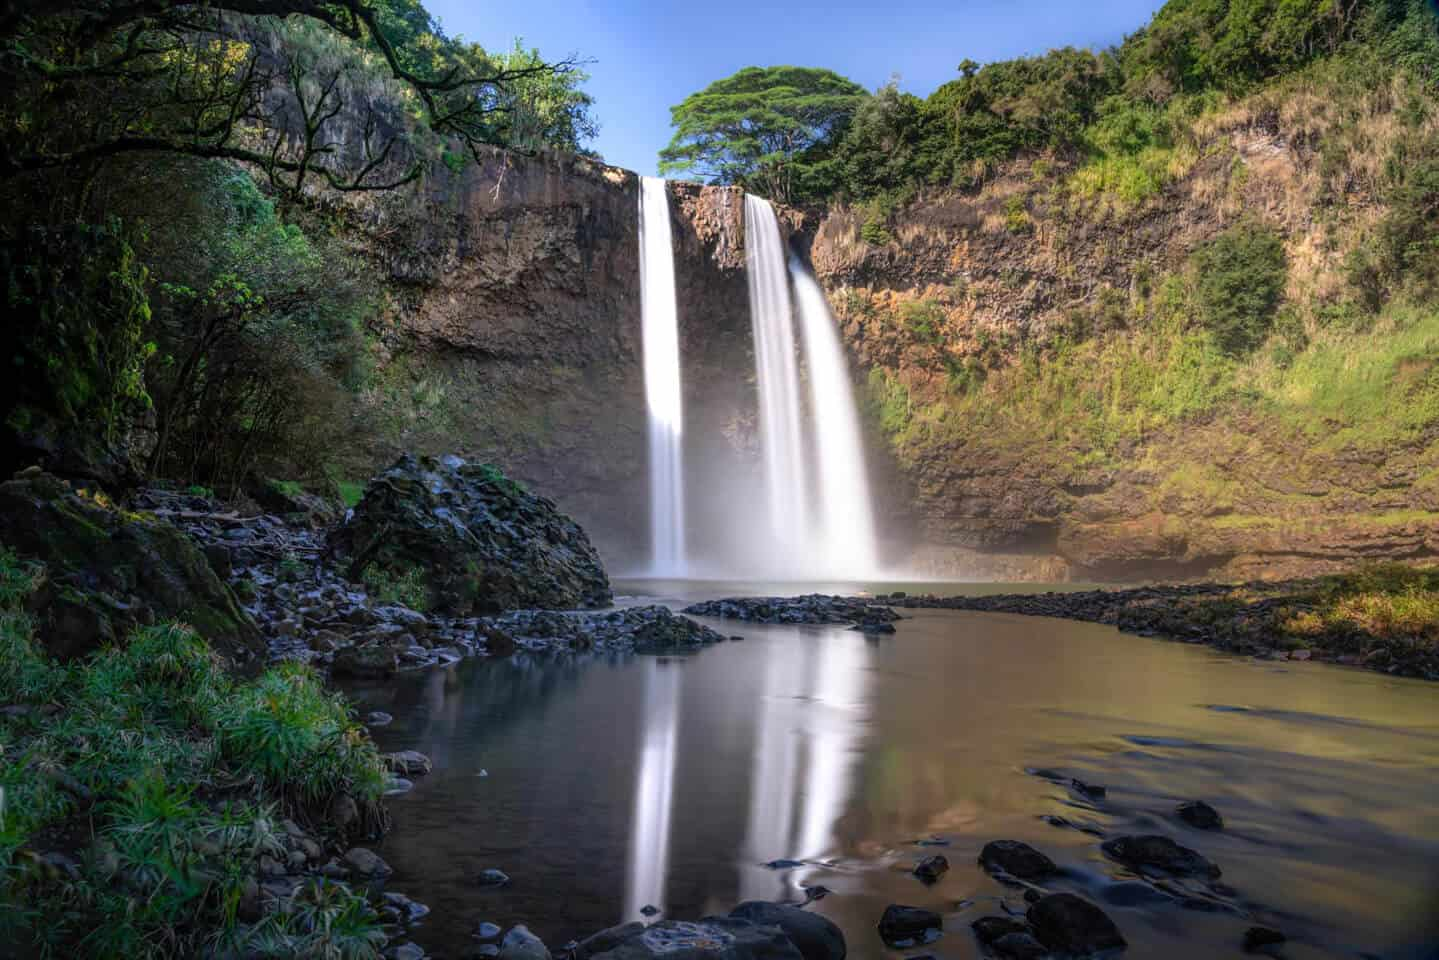 The Wailua region is home to the best waterfalls you'll discover in Kauai, including Wailua Falls.